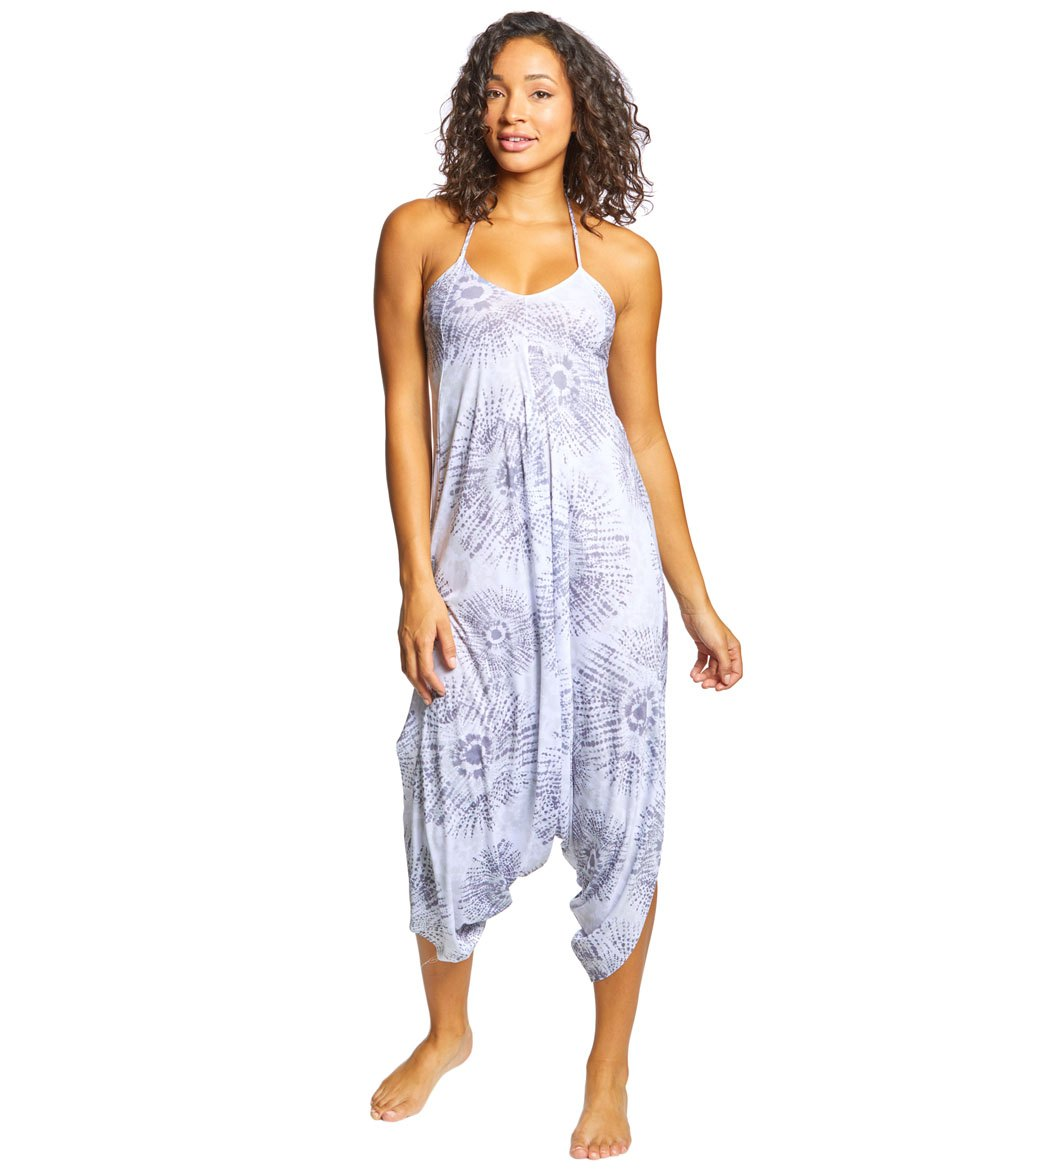 84484020d27 Onzie Tica Romper at YogaOutlet.com - Free Shipping